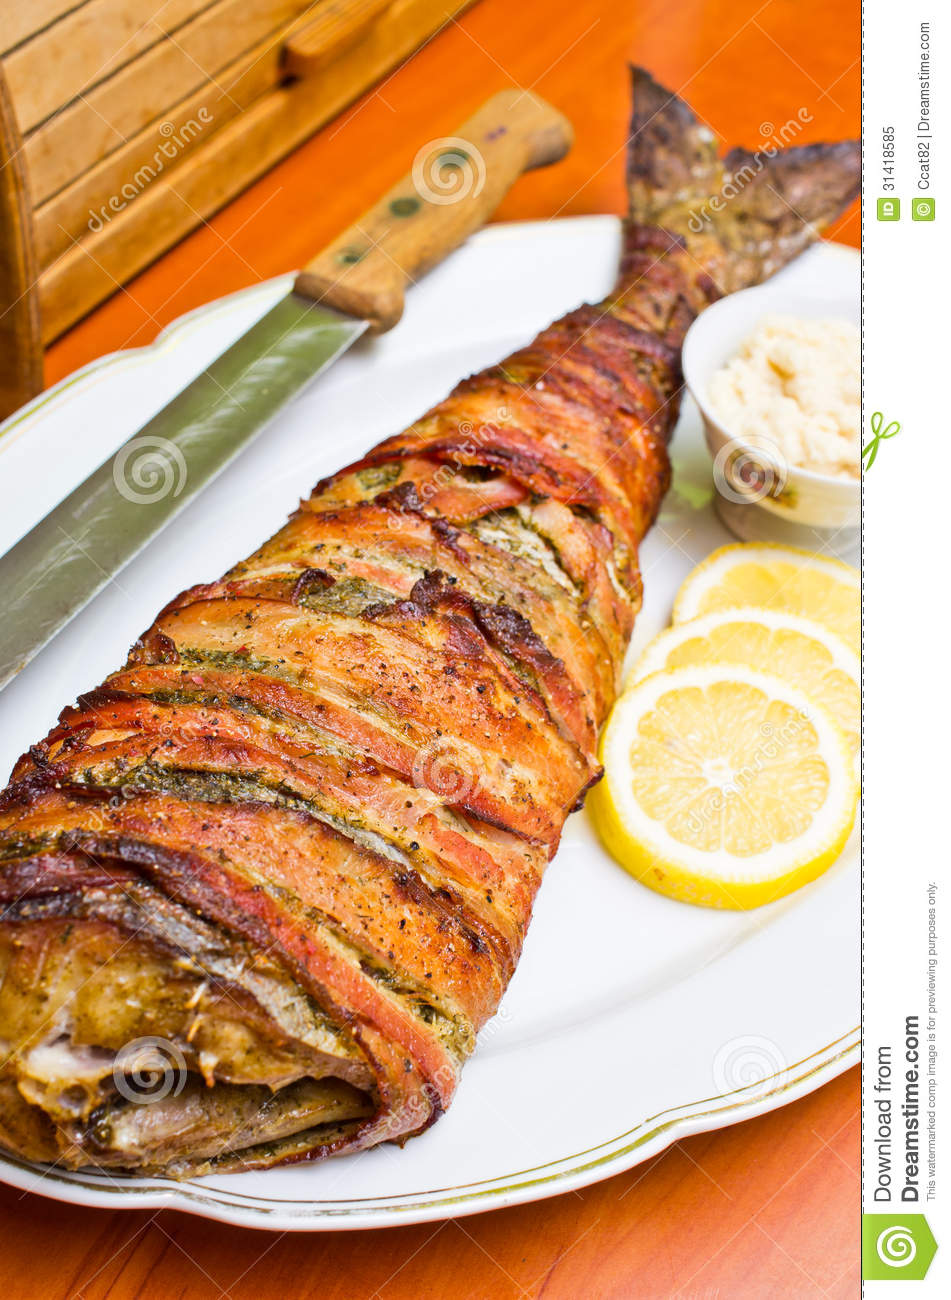 Fish wrapped in bacon stock image. Image of food, fillet ...